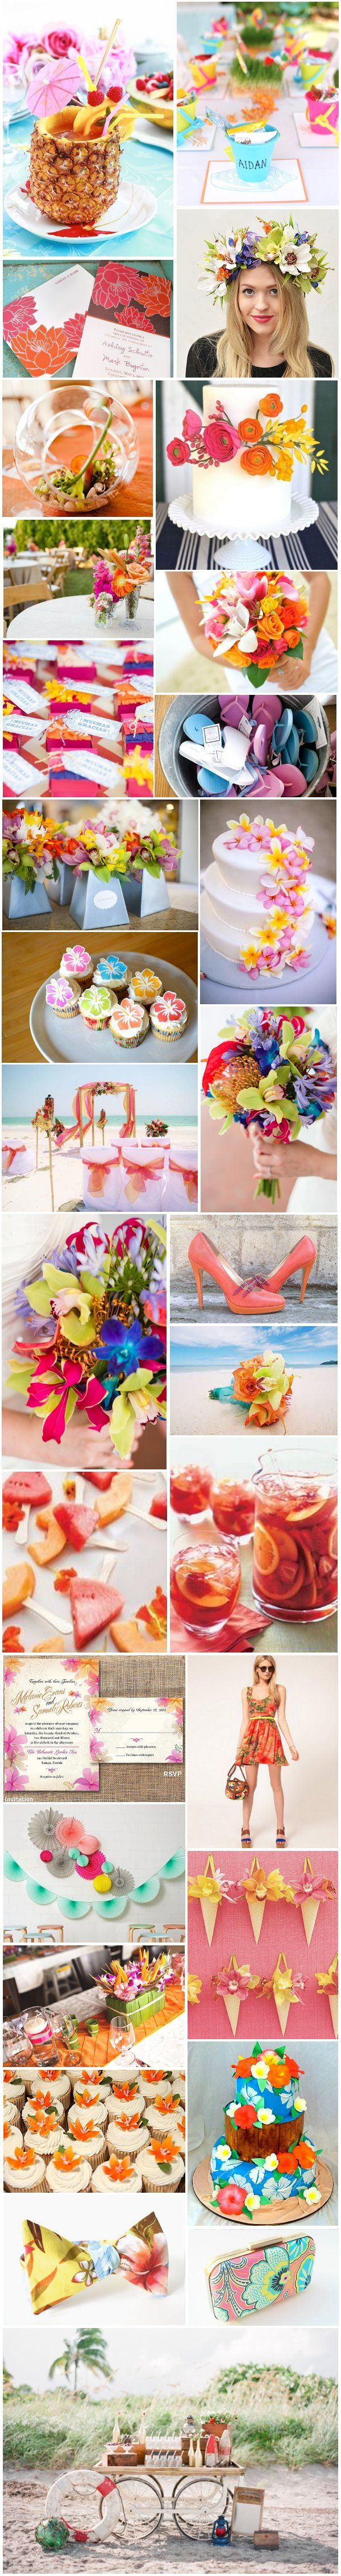 [Inspiration] Mariage tropical